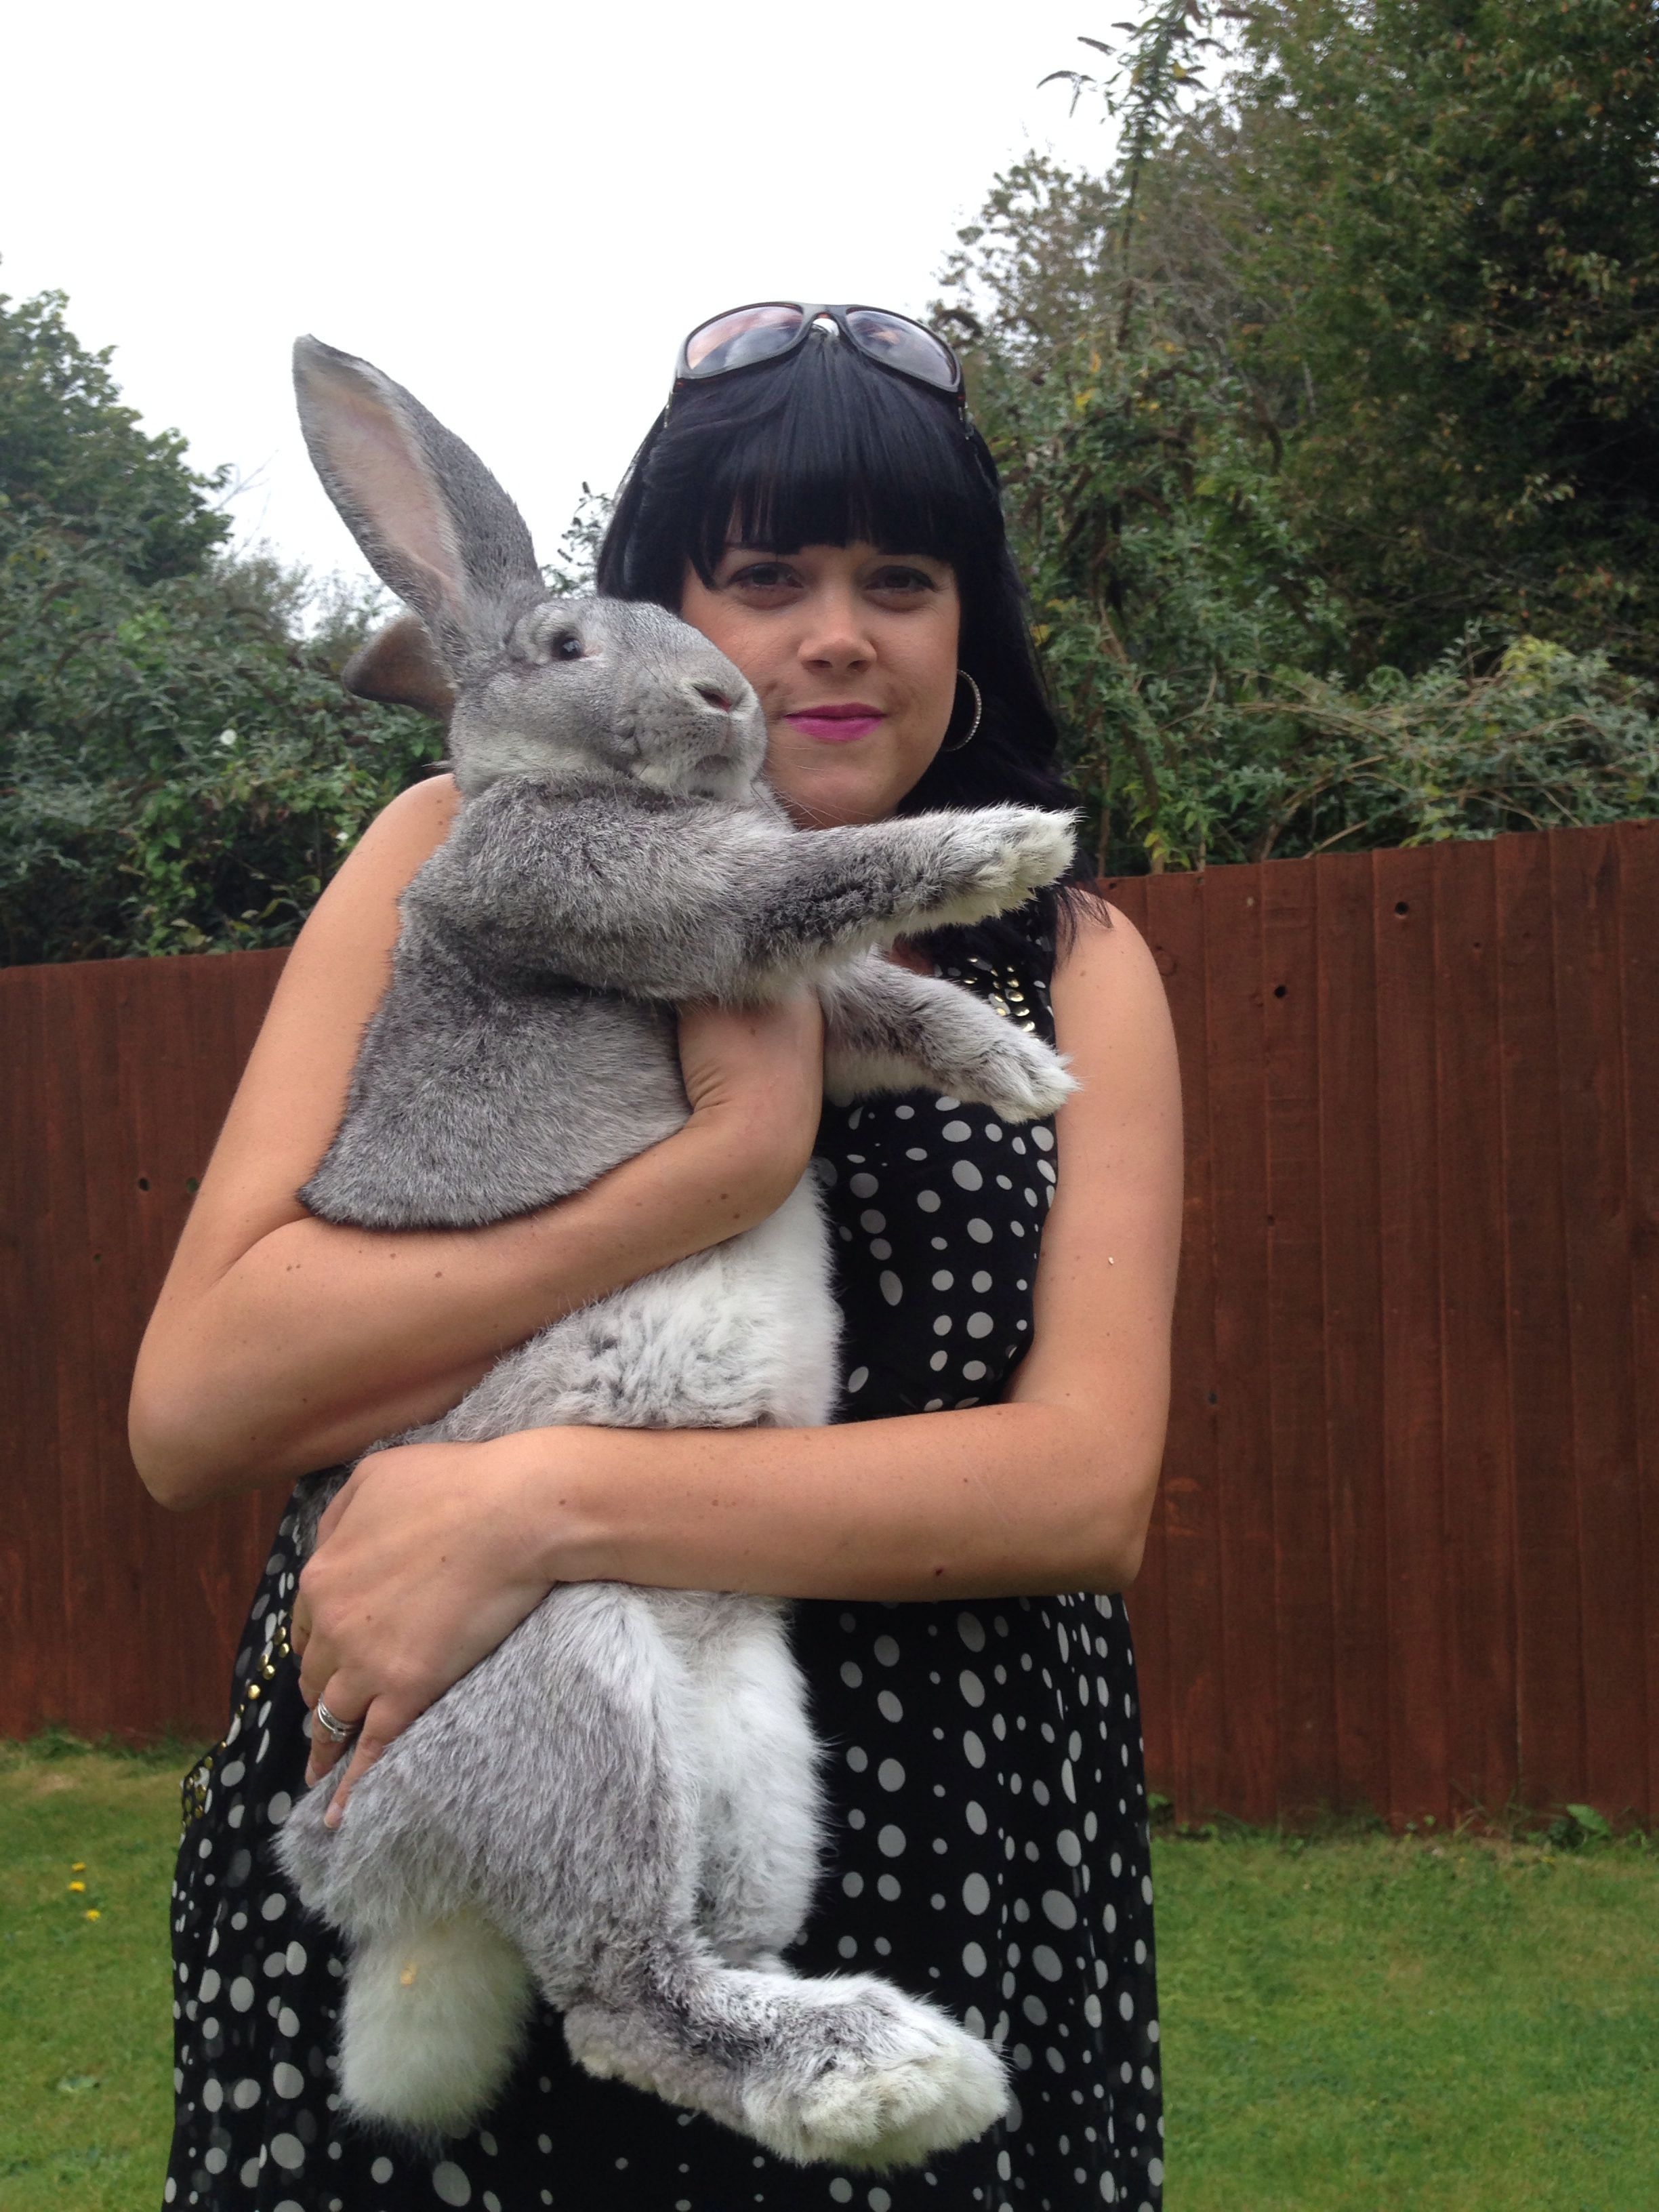 Giant Continental Rabbit Chincilla 6 Months I Want A Trio Of These Beauties Giant Rabbit Rabbit Cute Baby Bunnies